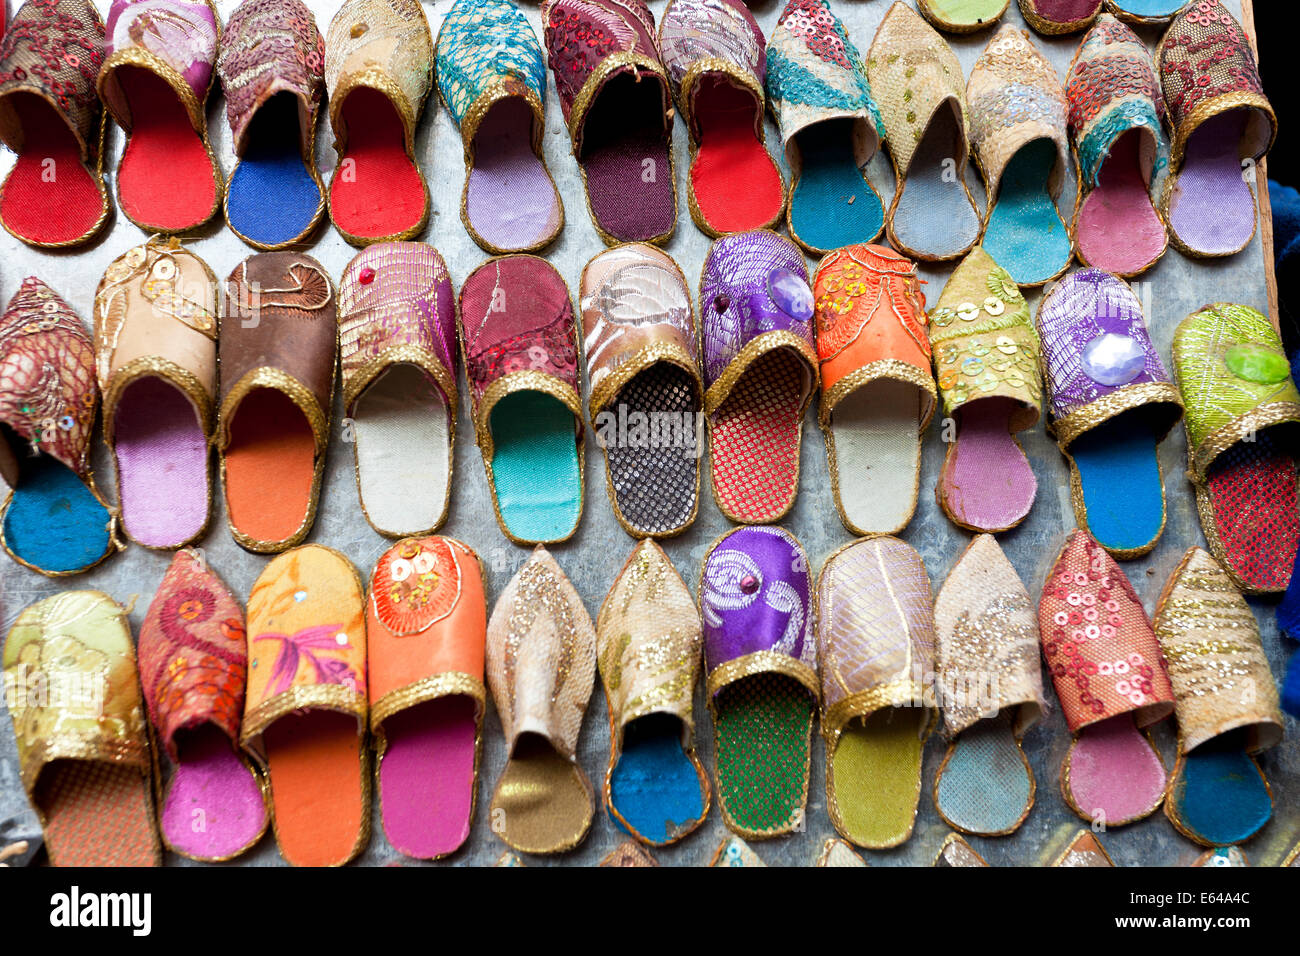 Leather slippers for sale in the Souk, Marrakech (Marrakesh), Morocco - Stock Image